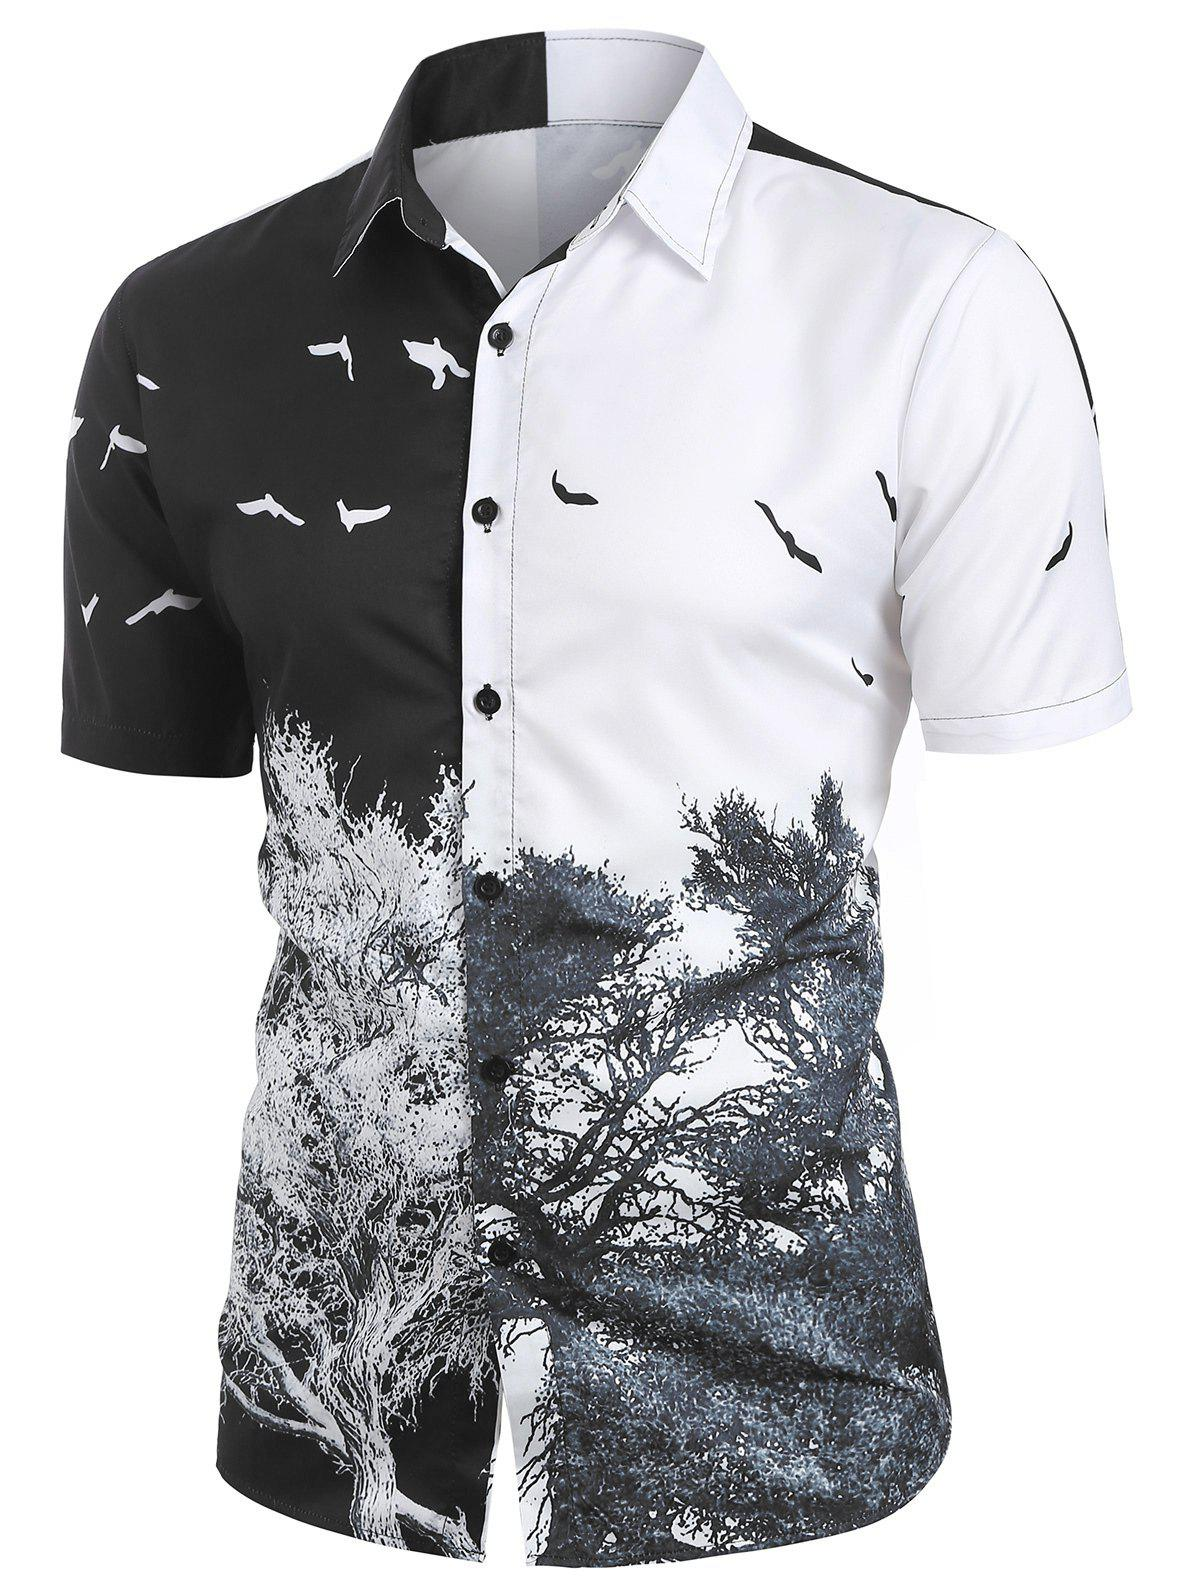 Tree and Bird Printed Button Up Shirt, Multi